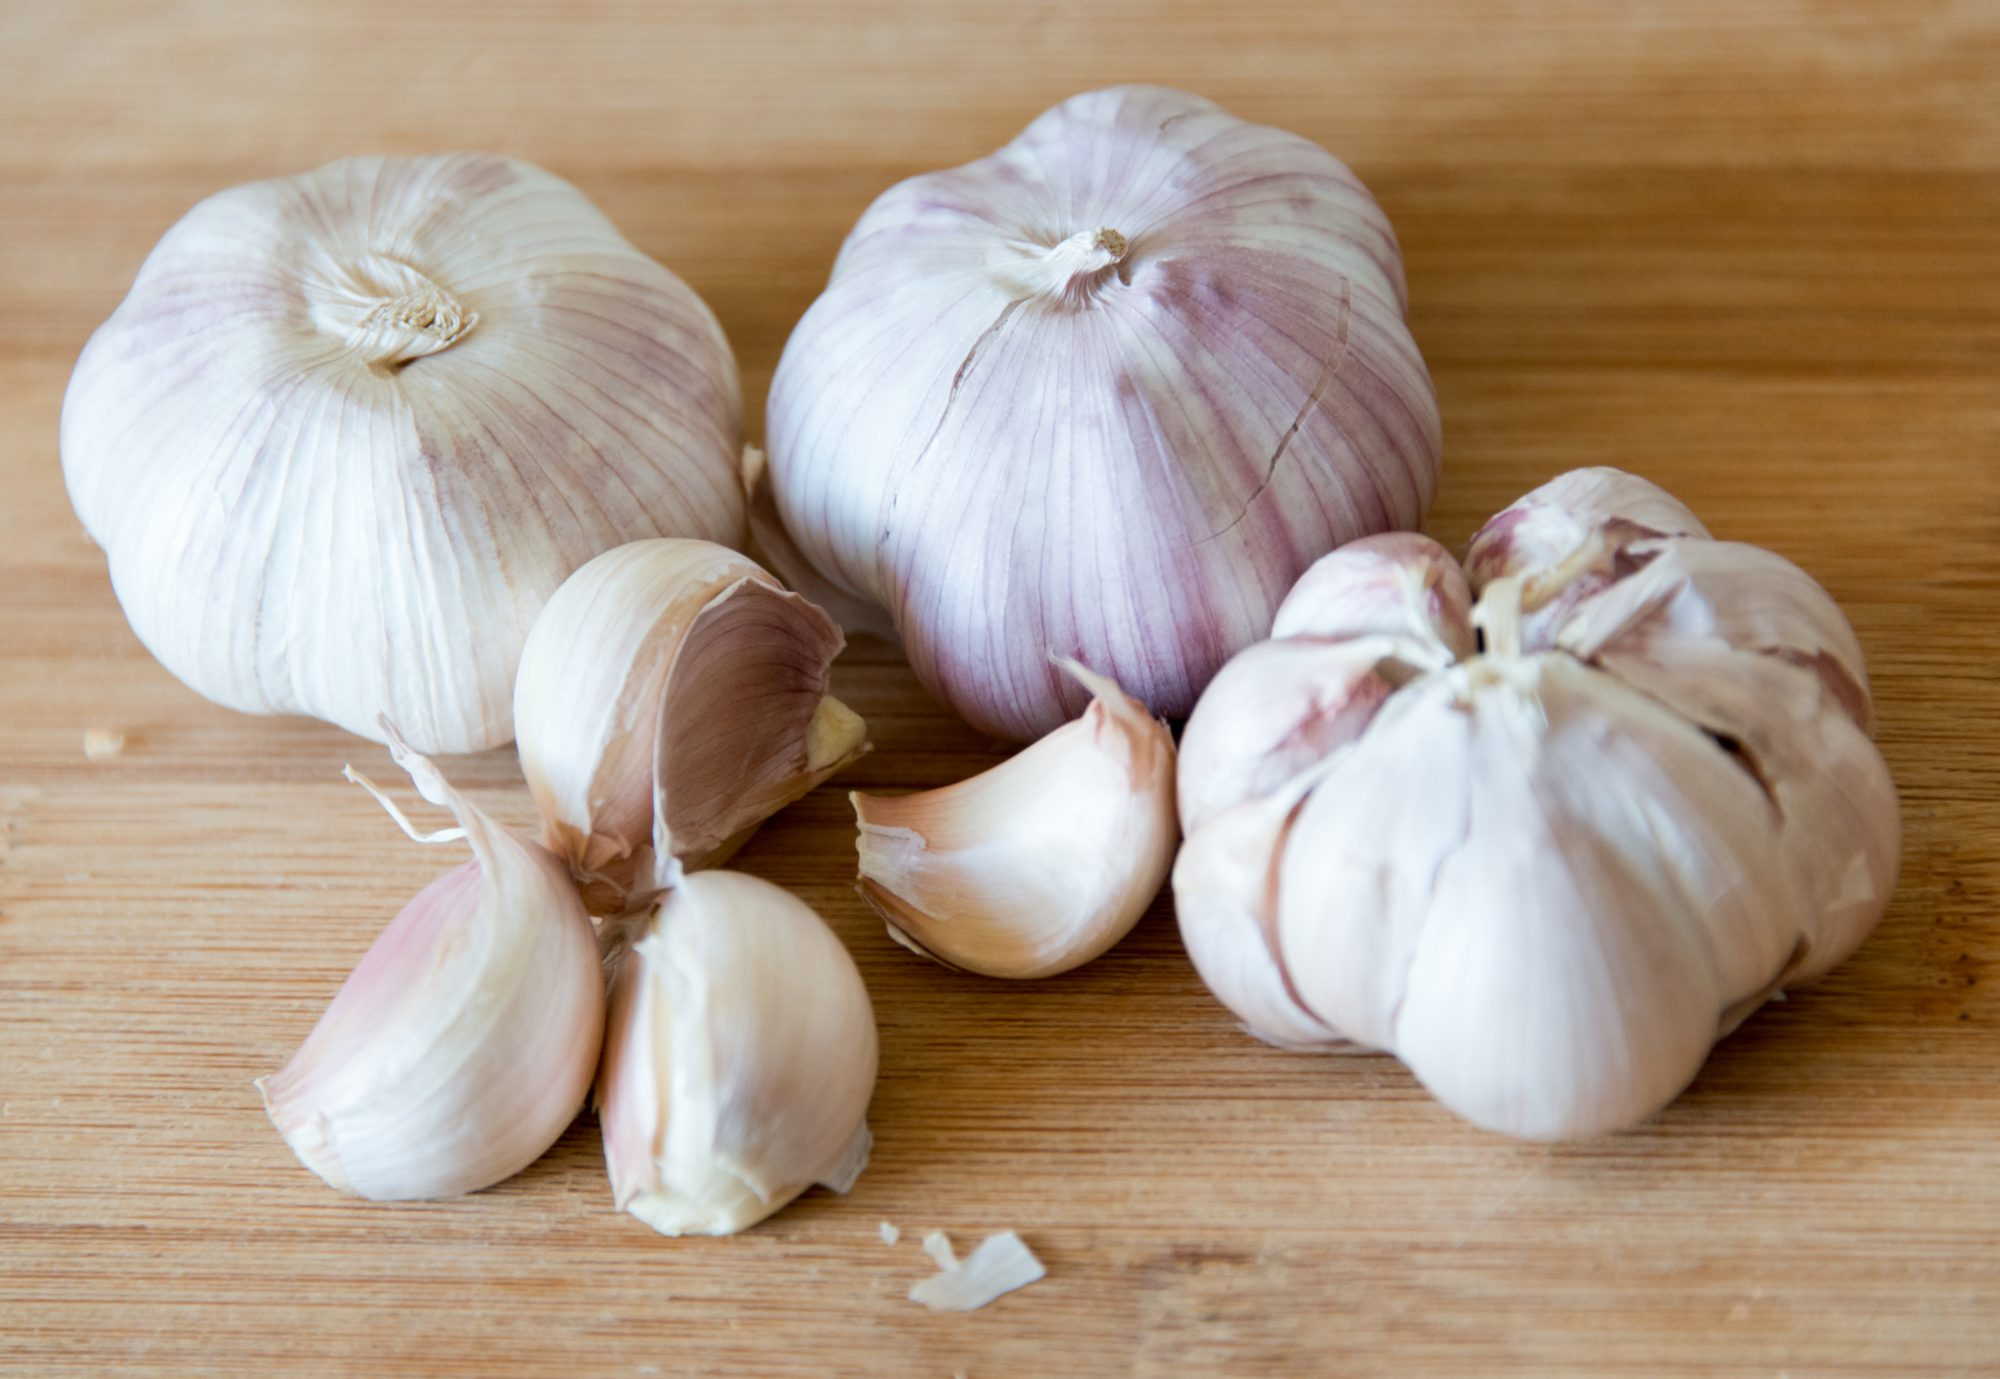 The Correct Way to Peel, Crush, and Chop Garlic, According to Jacques Pépin